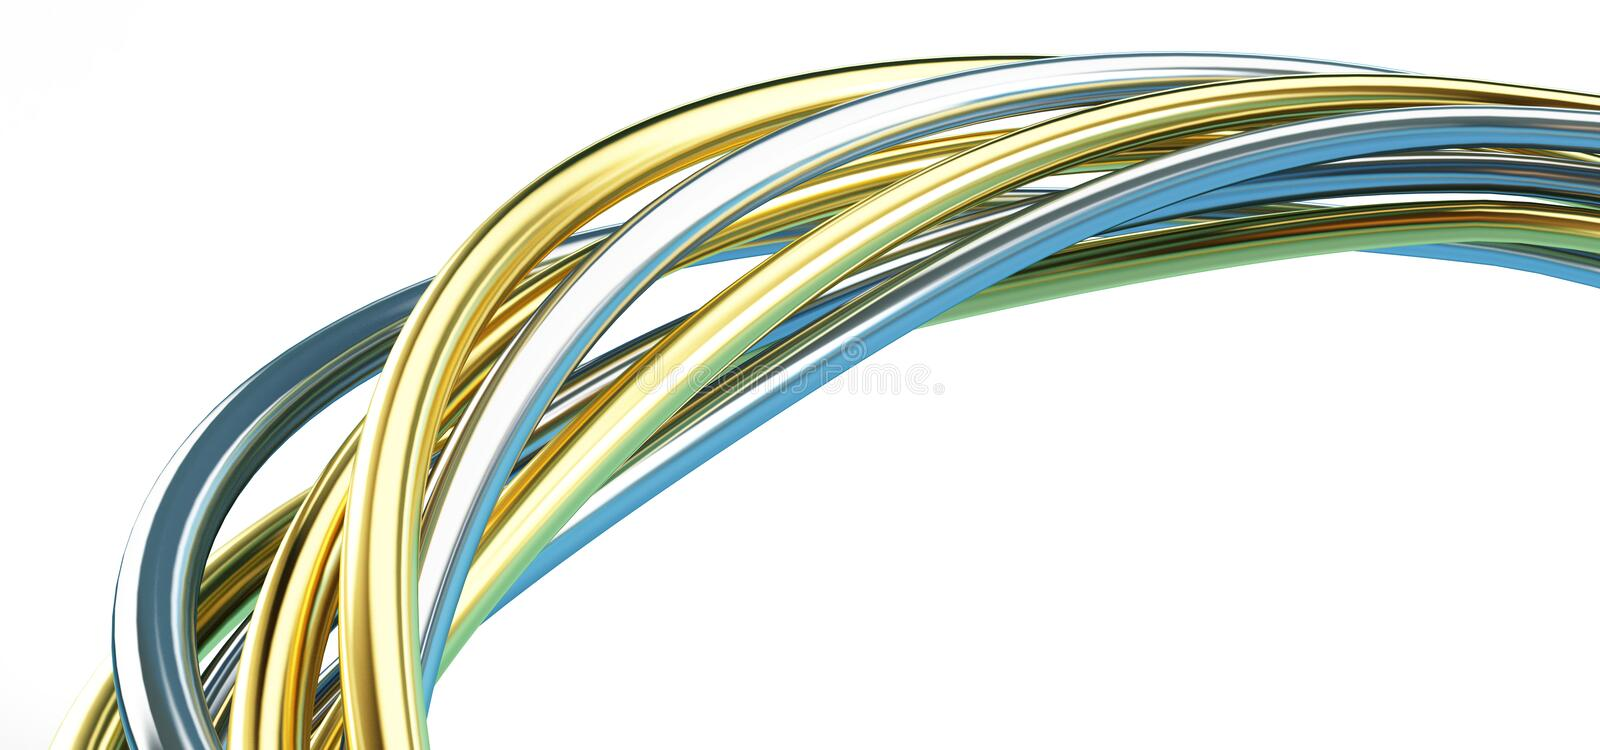 Gold and silver wire. 3d Illustrations on a white background vector illustration